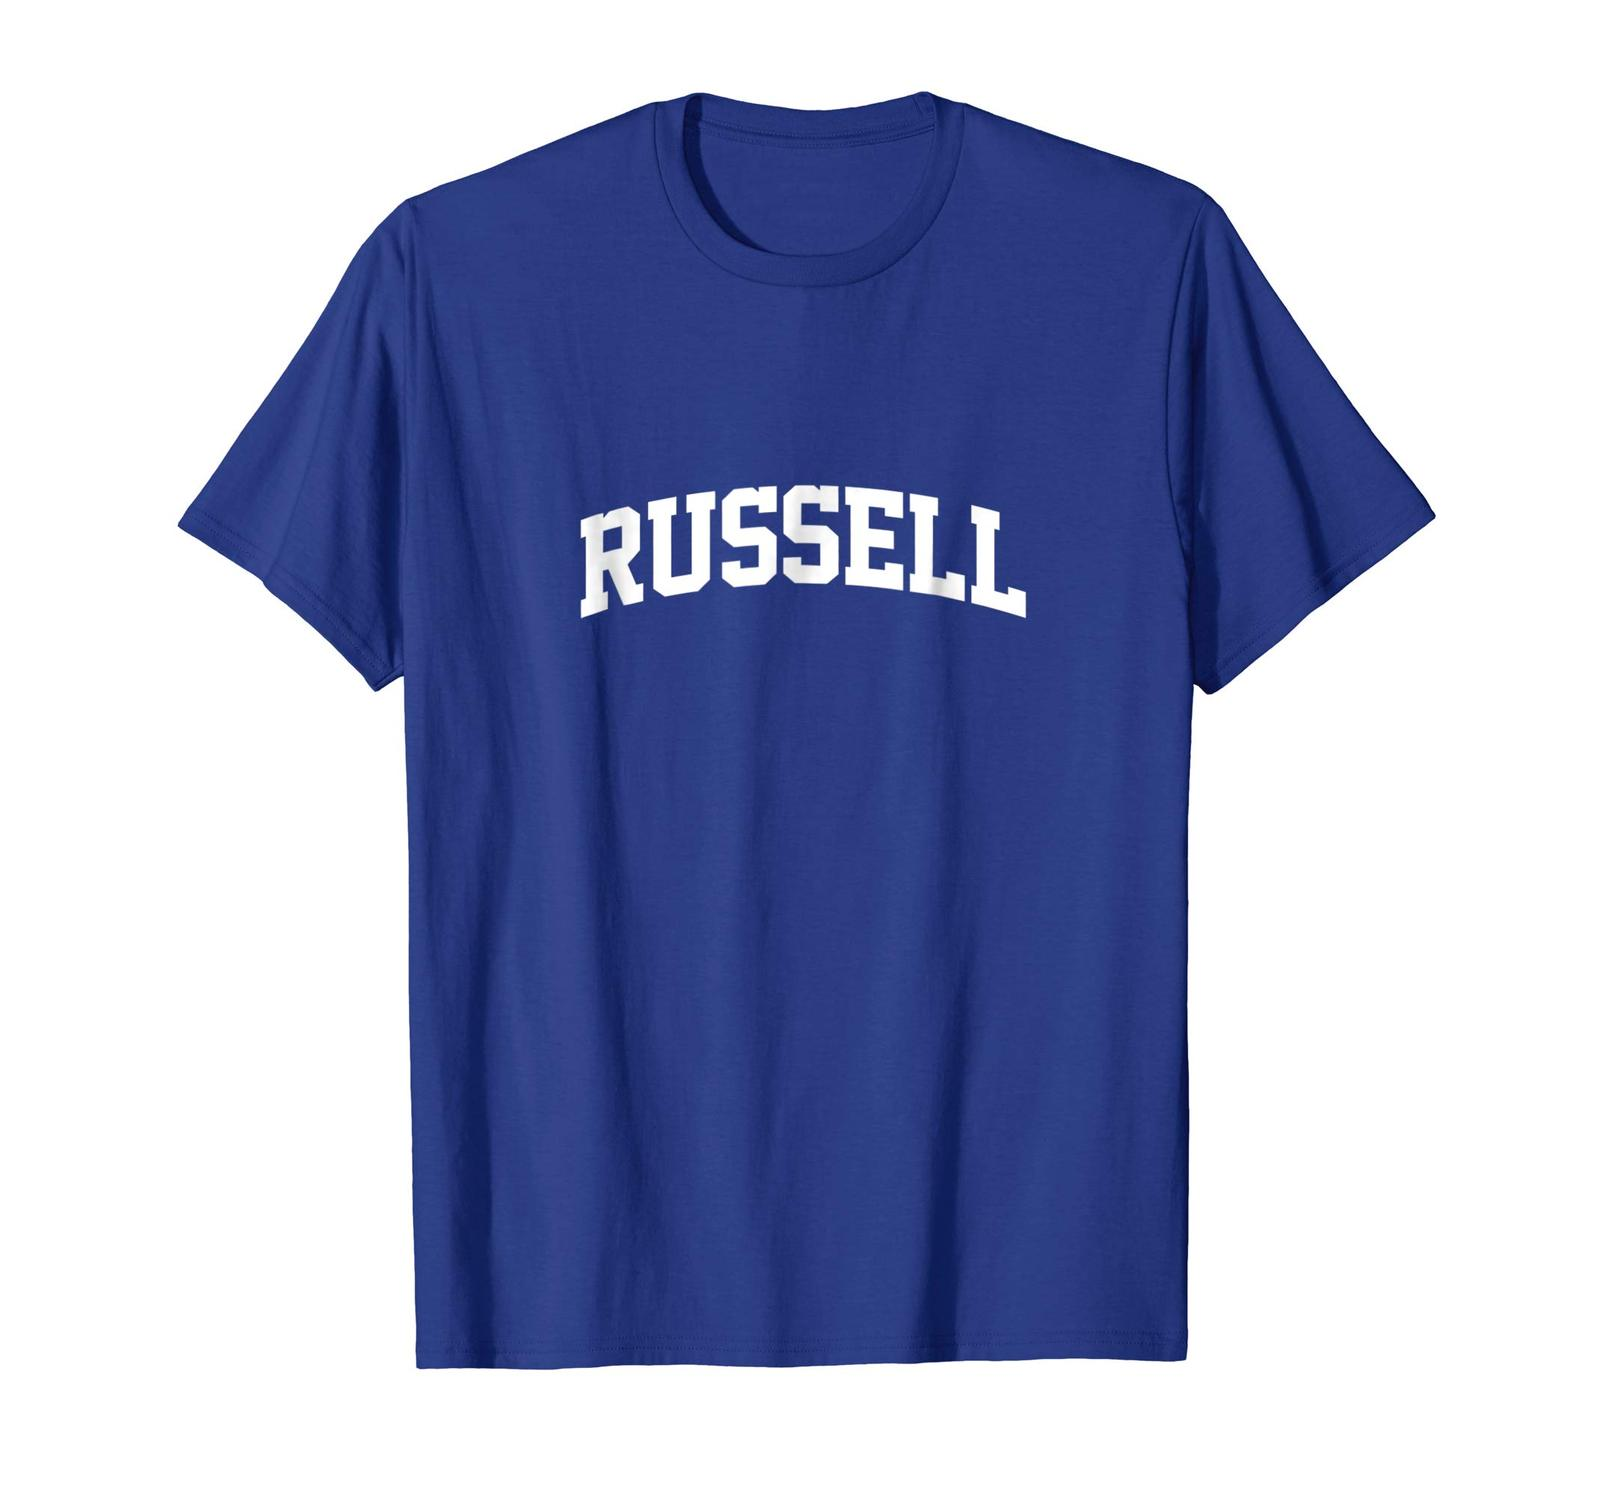 Funny Tee - Russell Family Name Russell T-Shirt Men